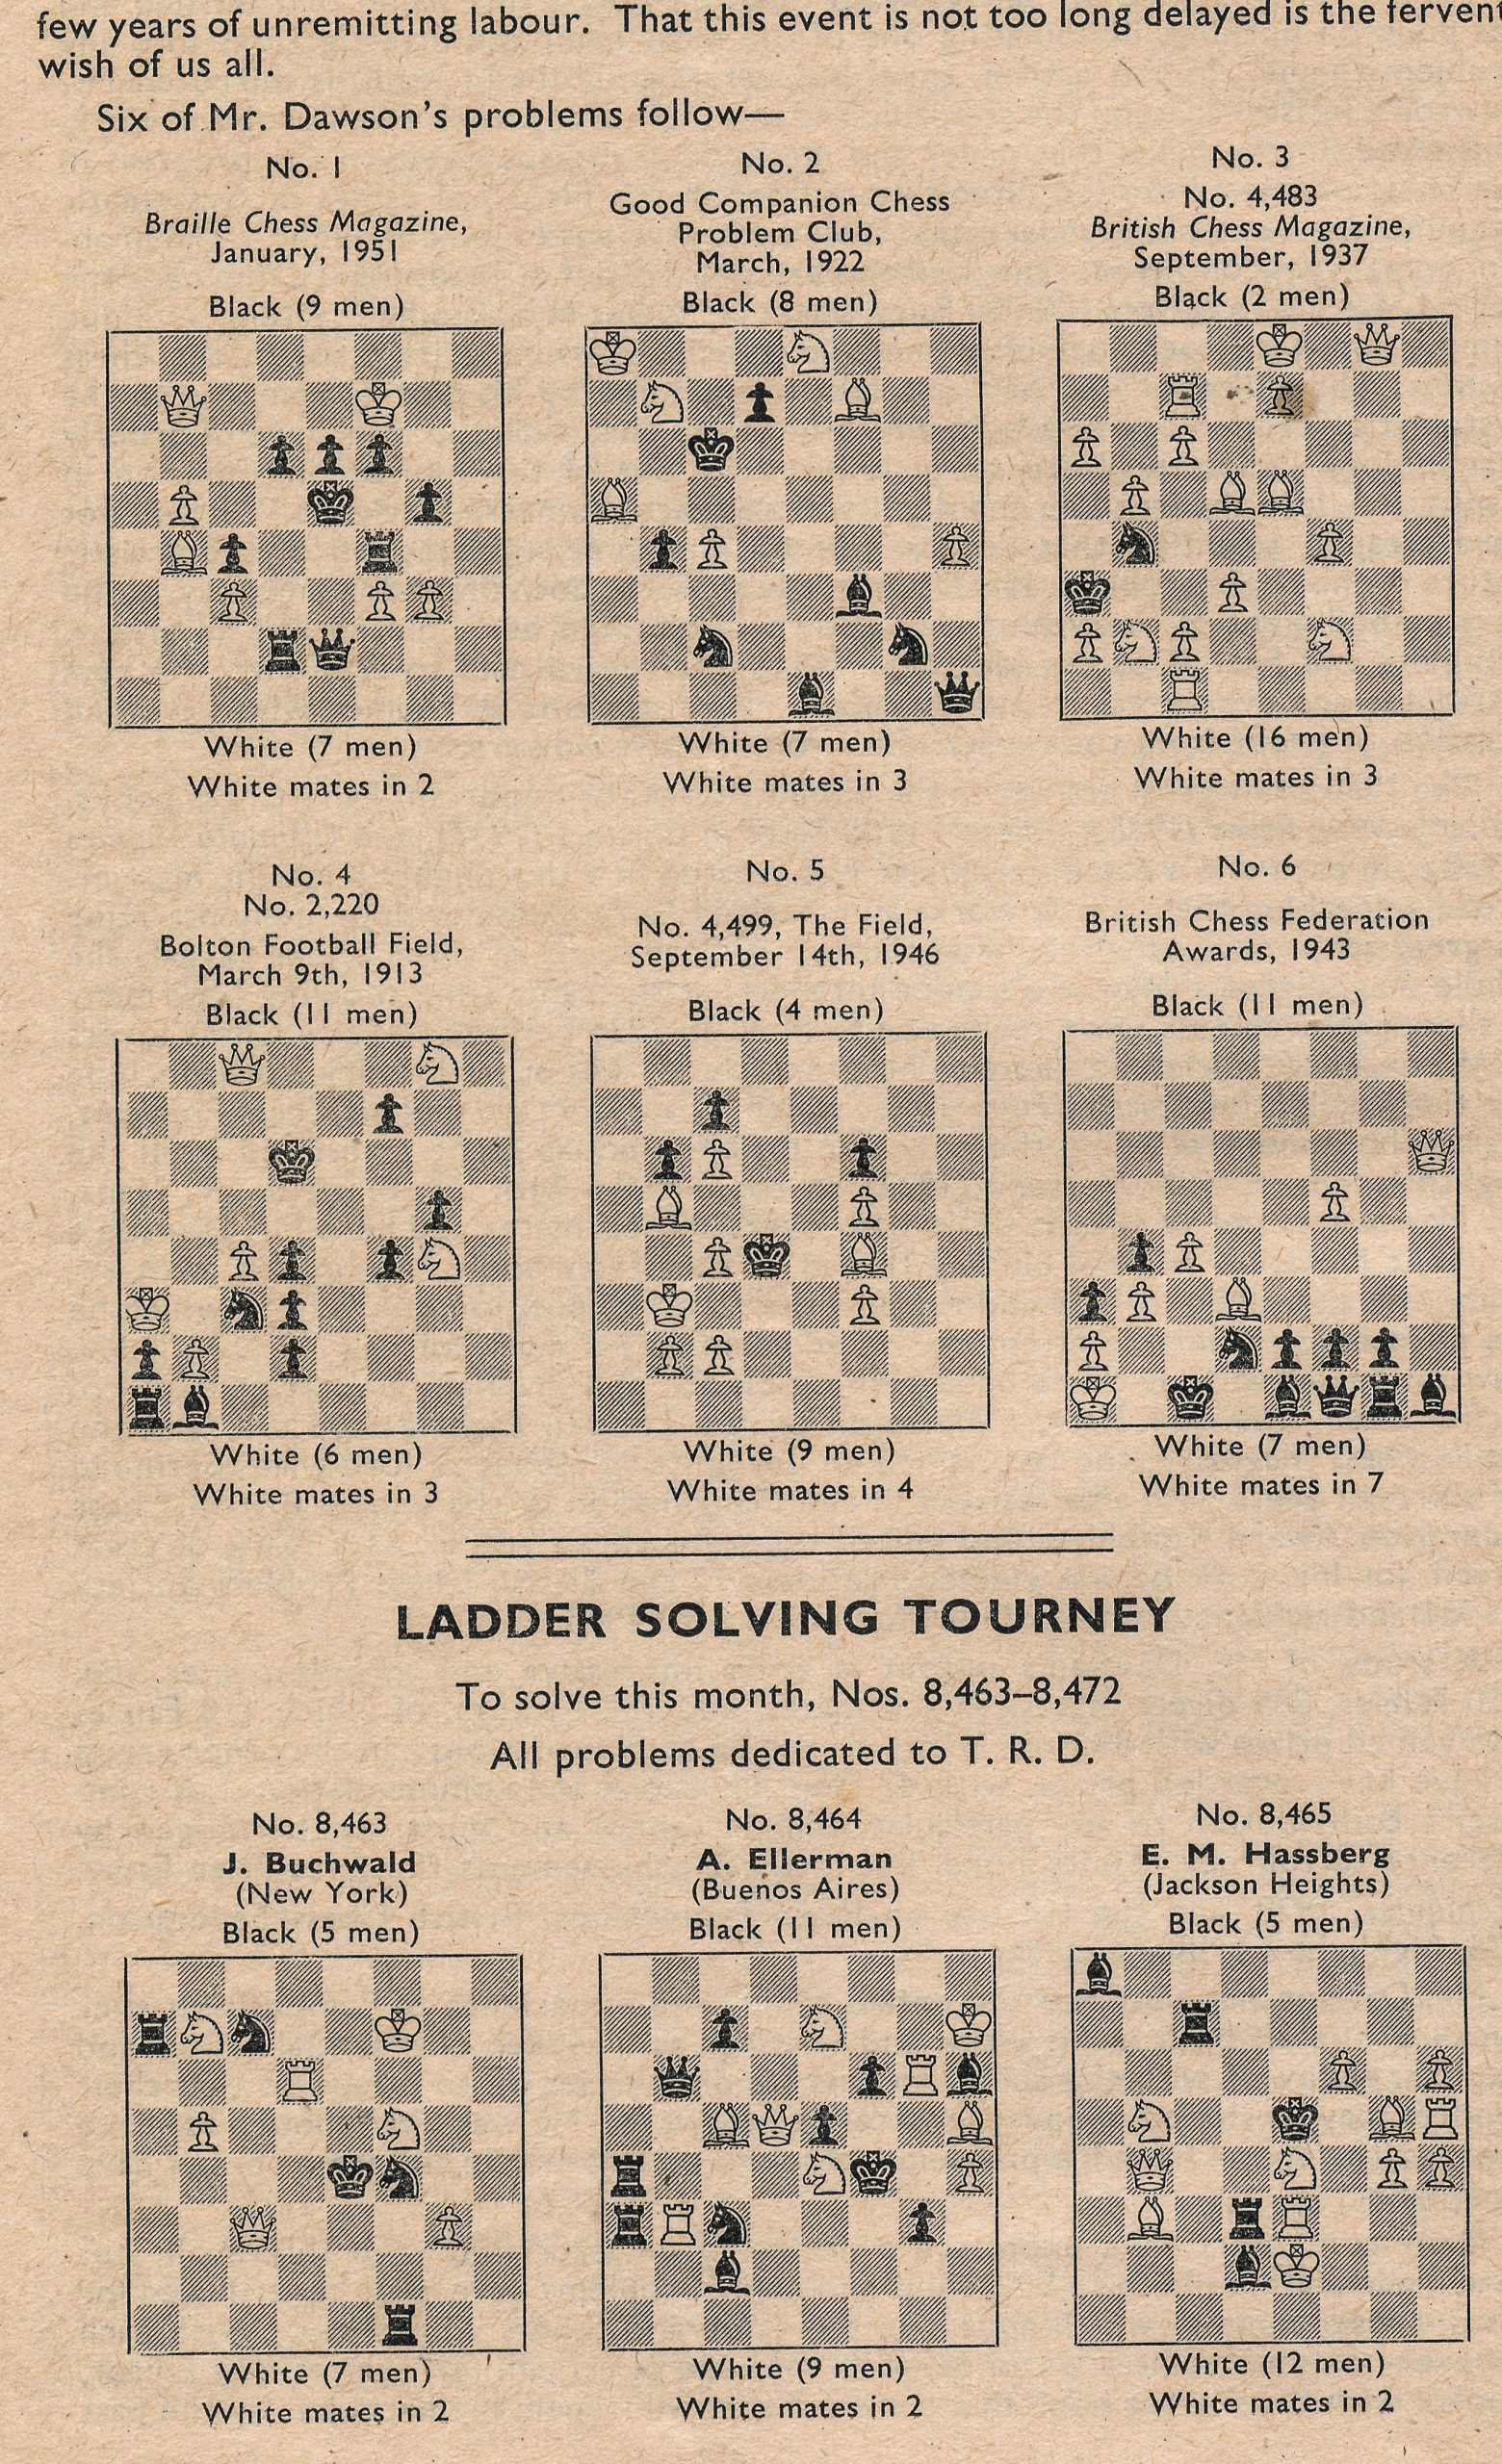 British Chess Magazine, Volume LXX1 (71, 1951), Number 3 (March) p8 77 - 80.